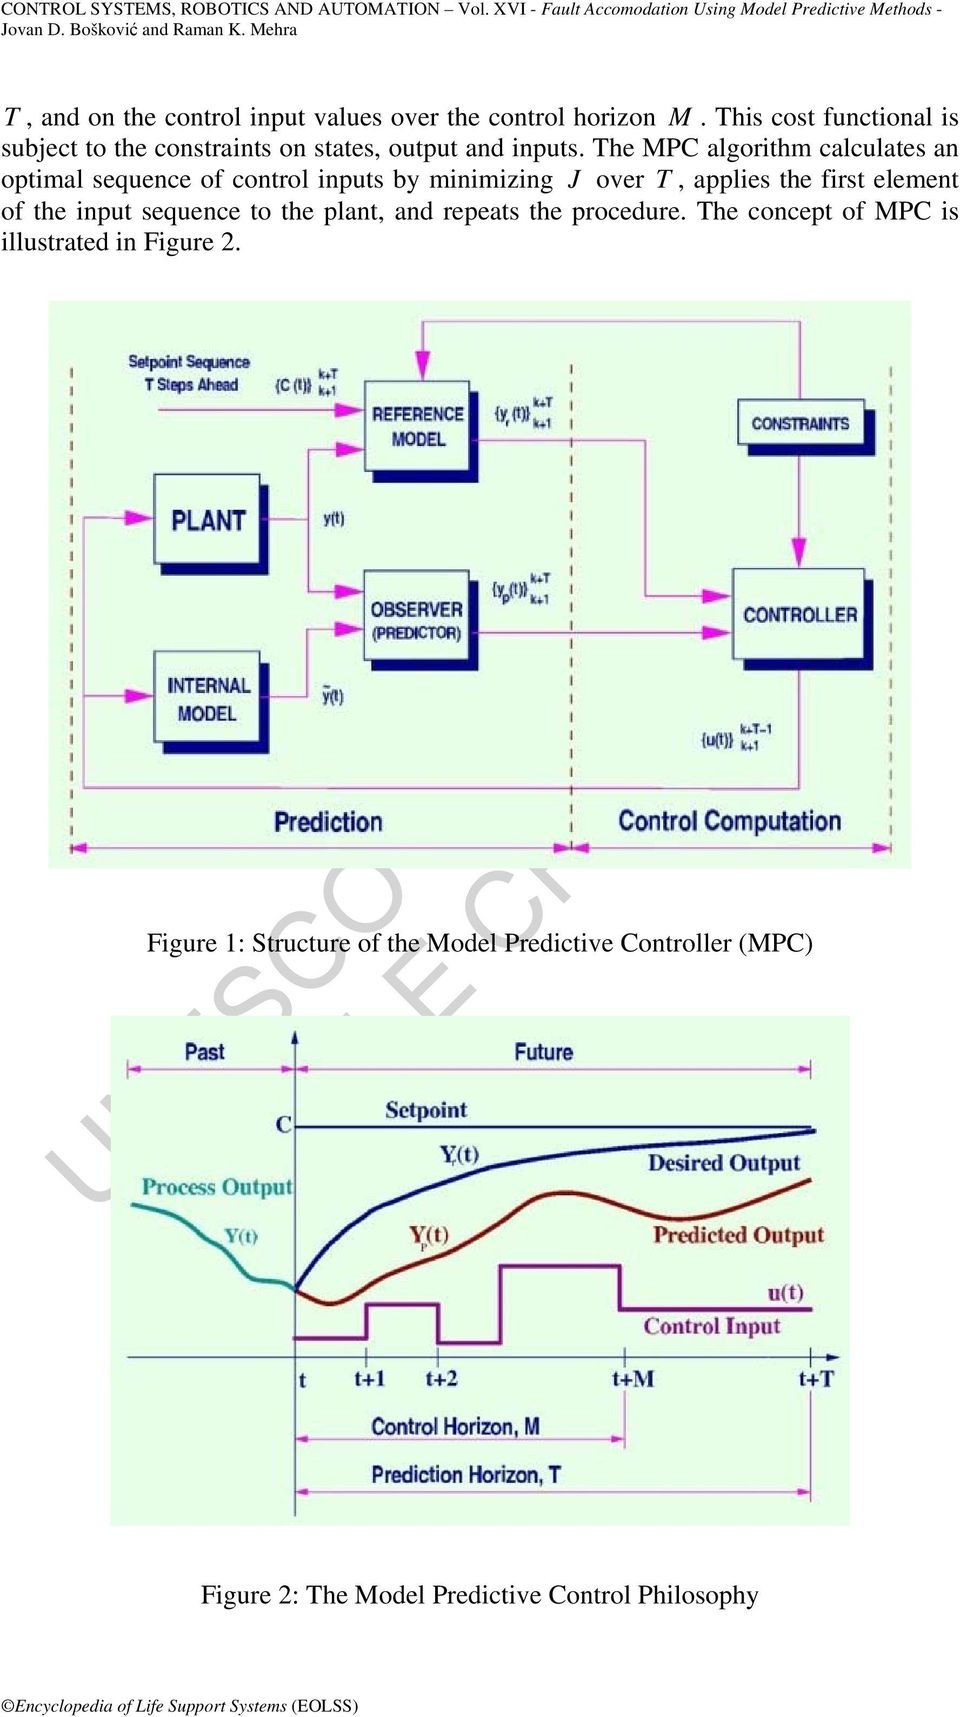 The MPC algorithm calculates an optimal sequence of control inputs by minimizing J over T, applies the first element of